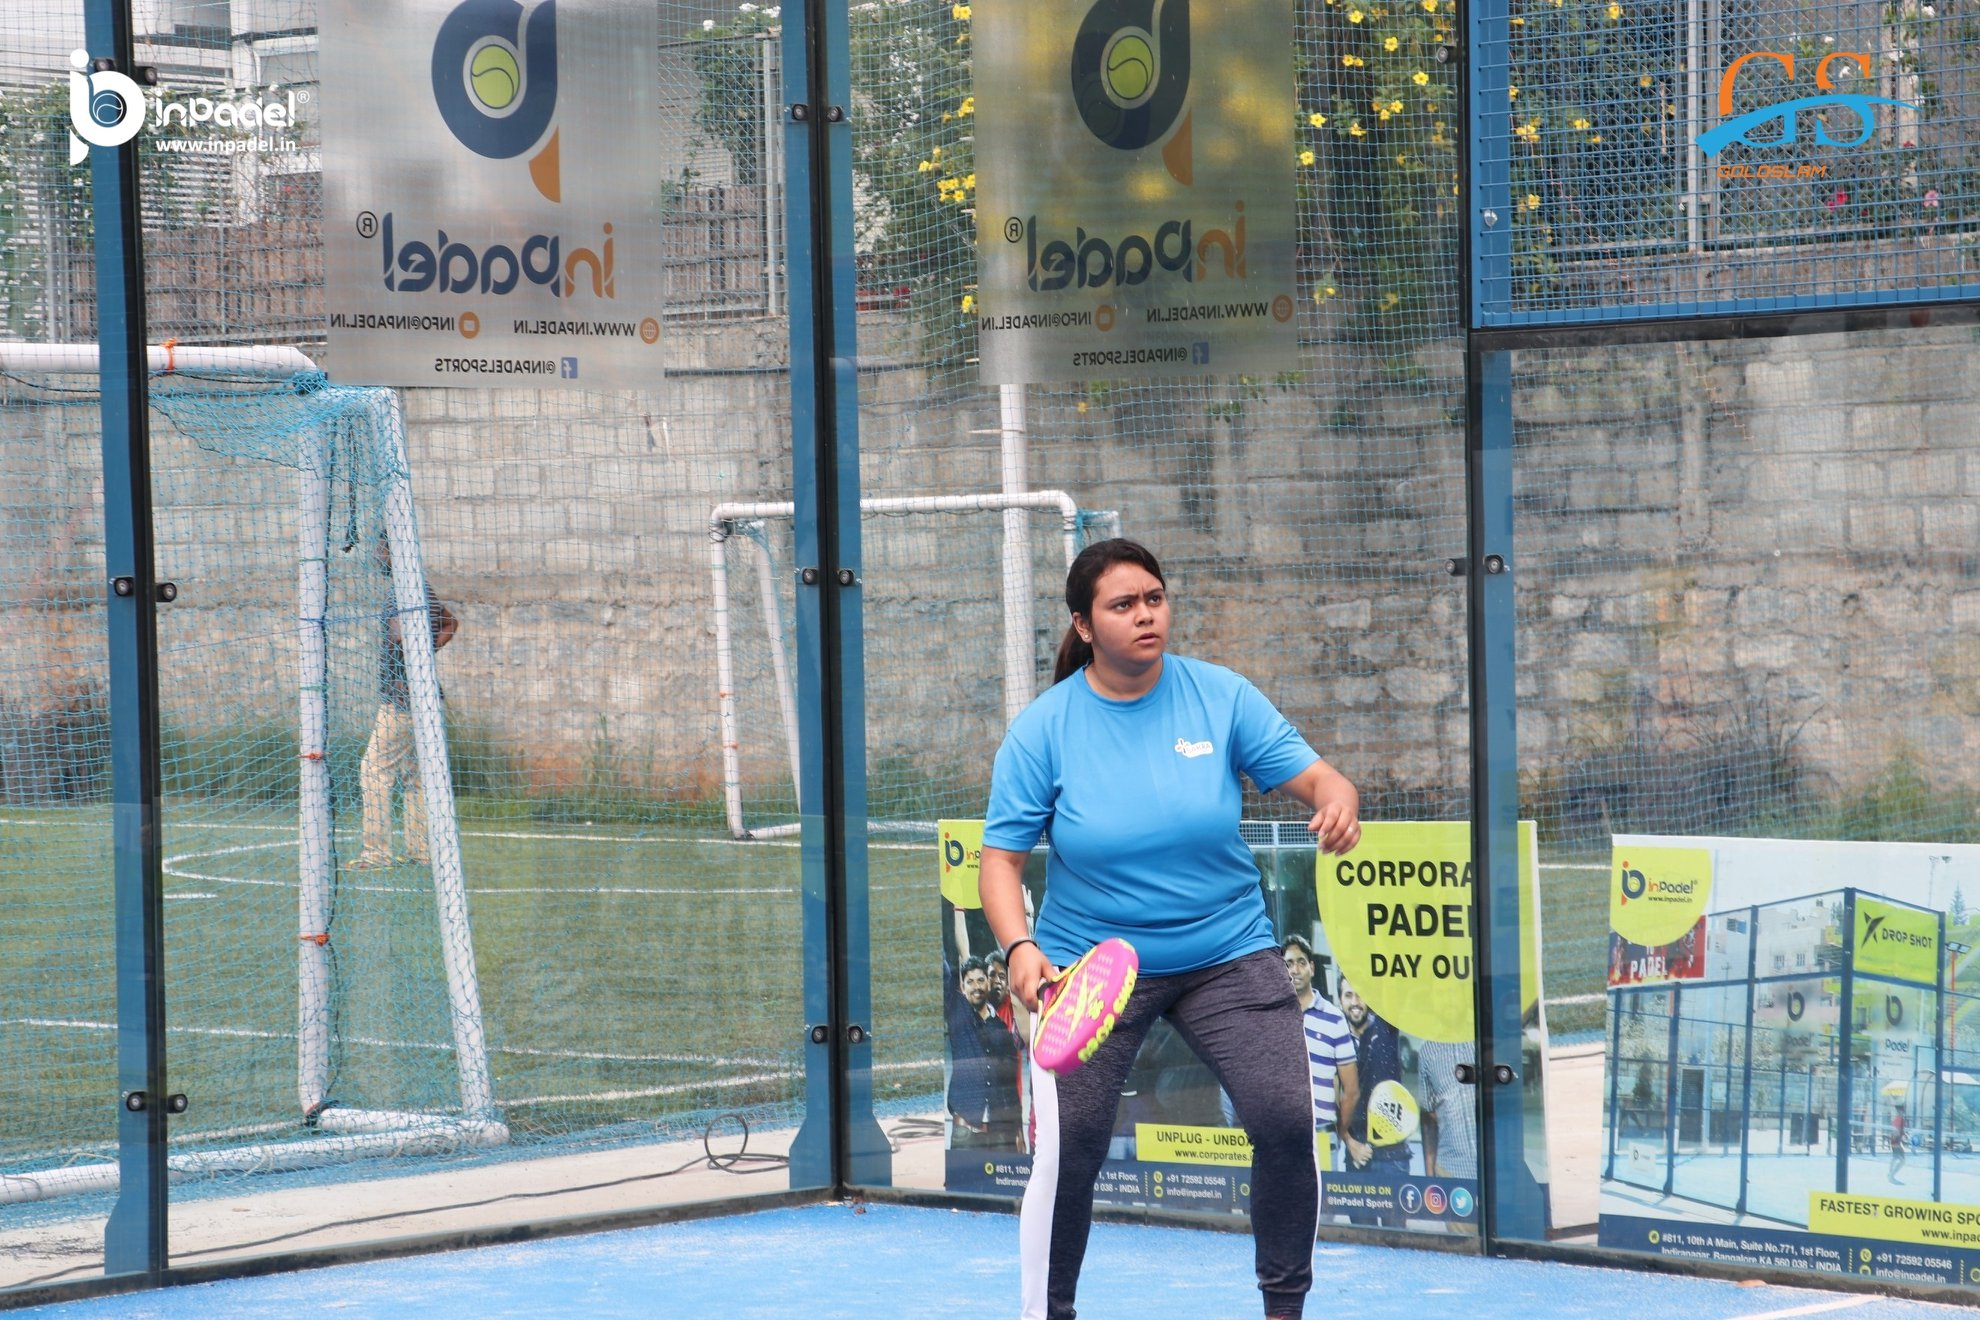 InPadel Corporate Website by GoldSlam Sports (10)